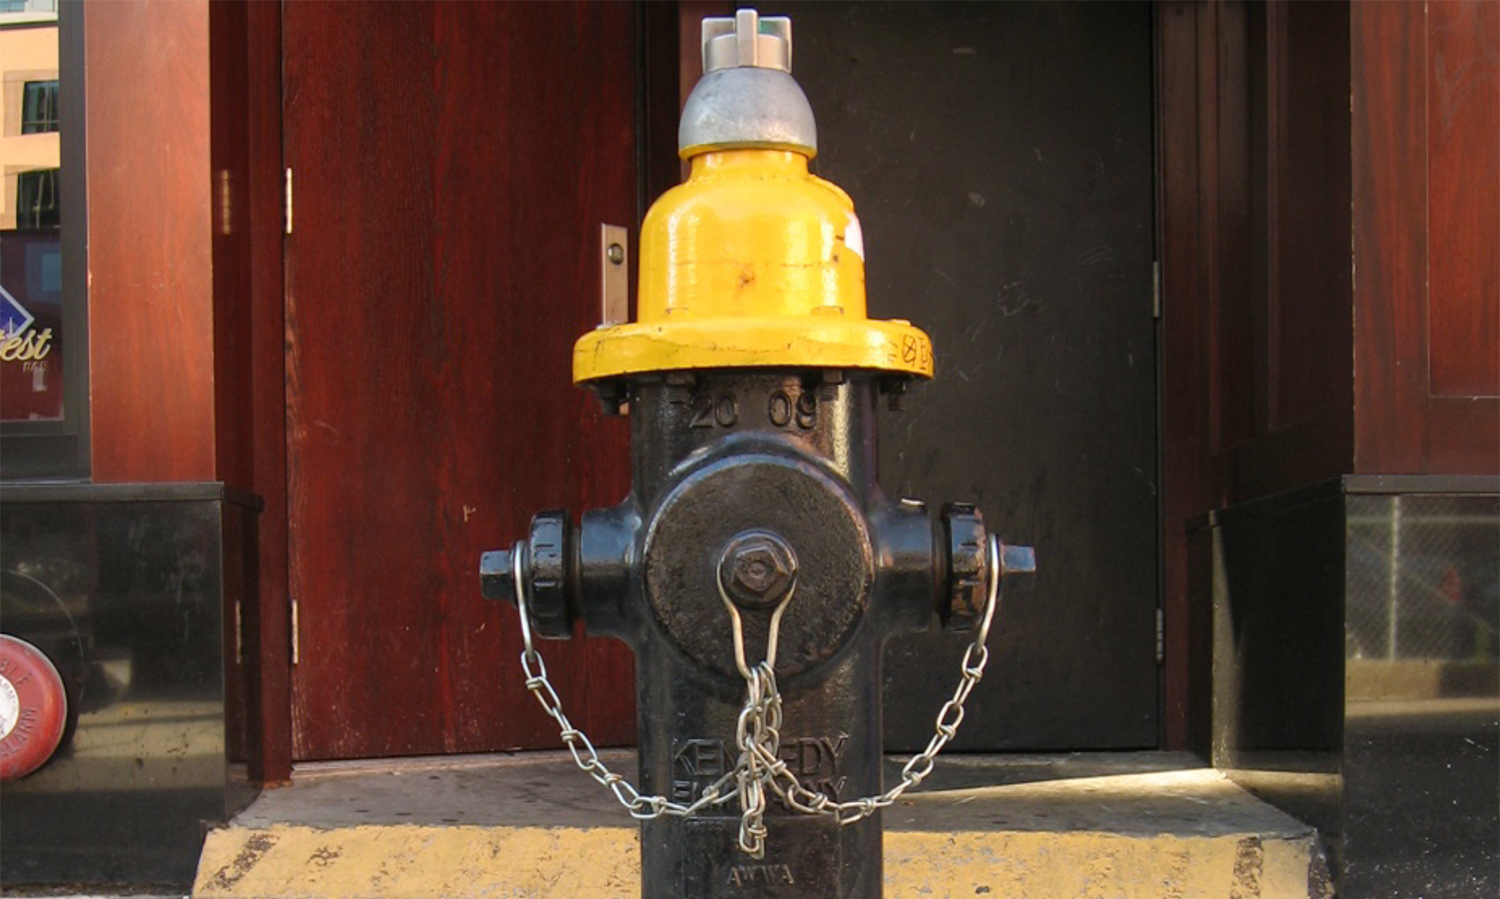 We realized fire hydrants were something readily available and just the right height. But how to alter them?